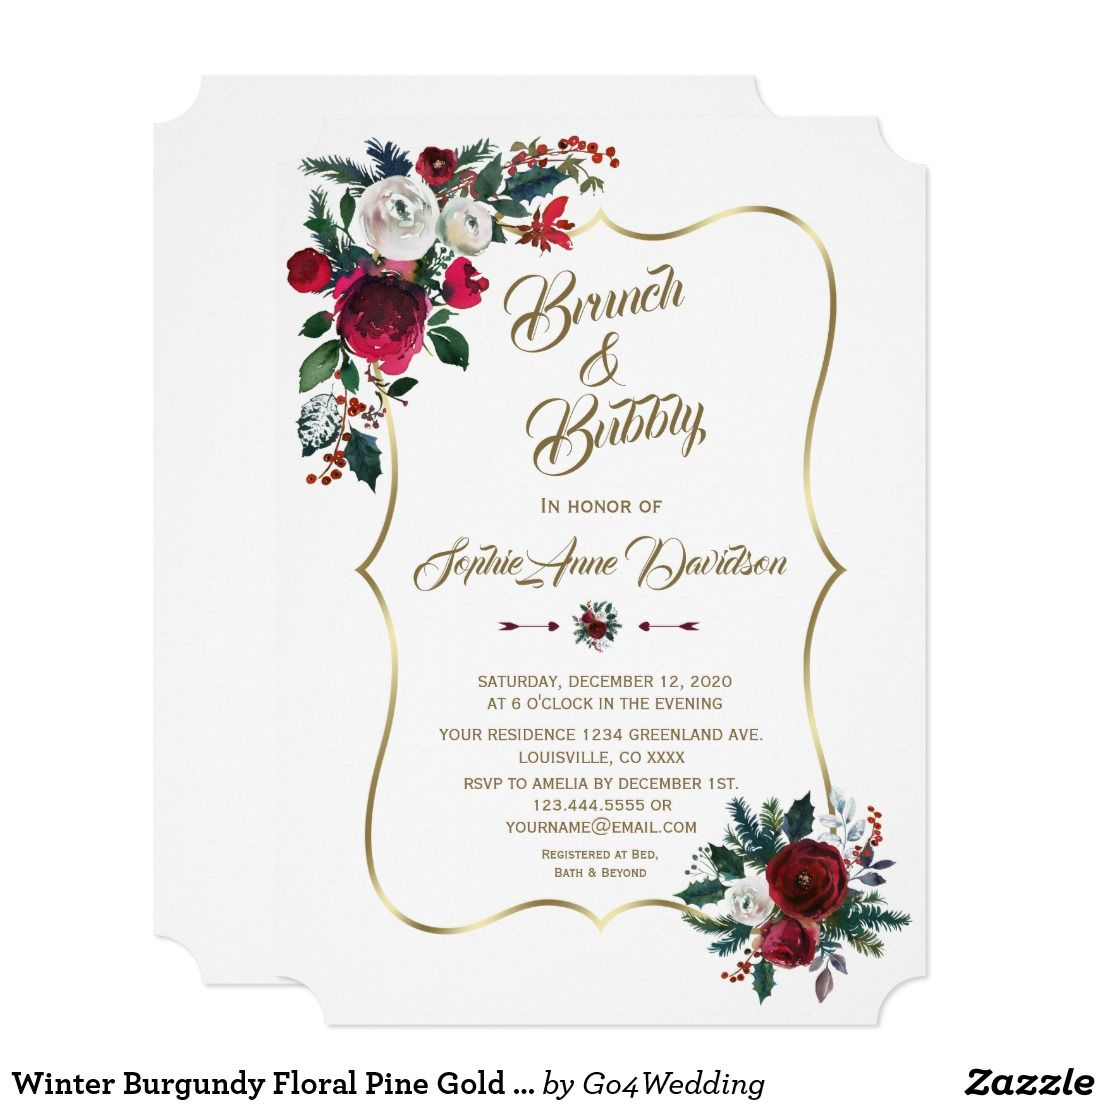 77c21fbc4791 Winter Burgundy Floral Pine Gold Brunch   Bubbly Invitation in 2018 ...